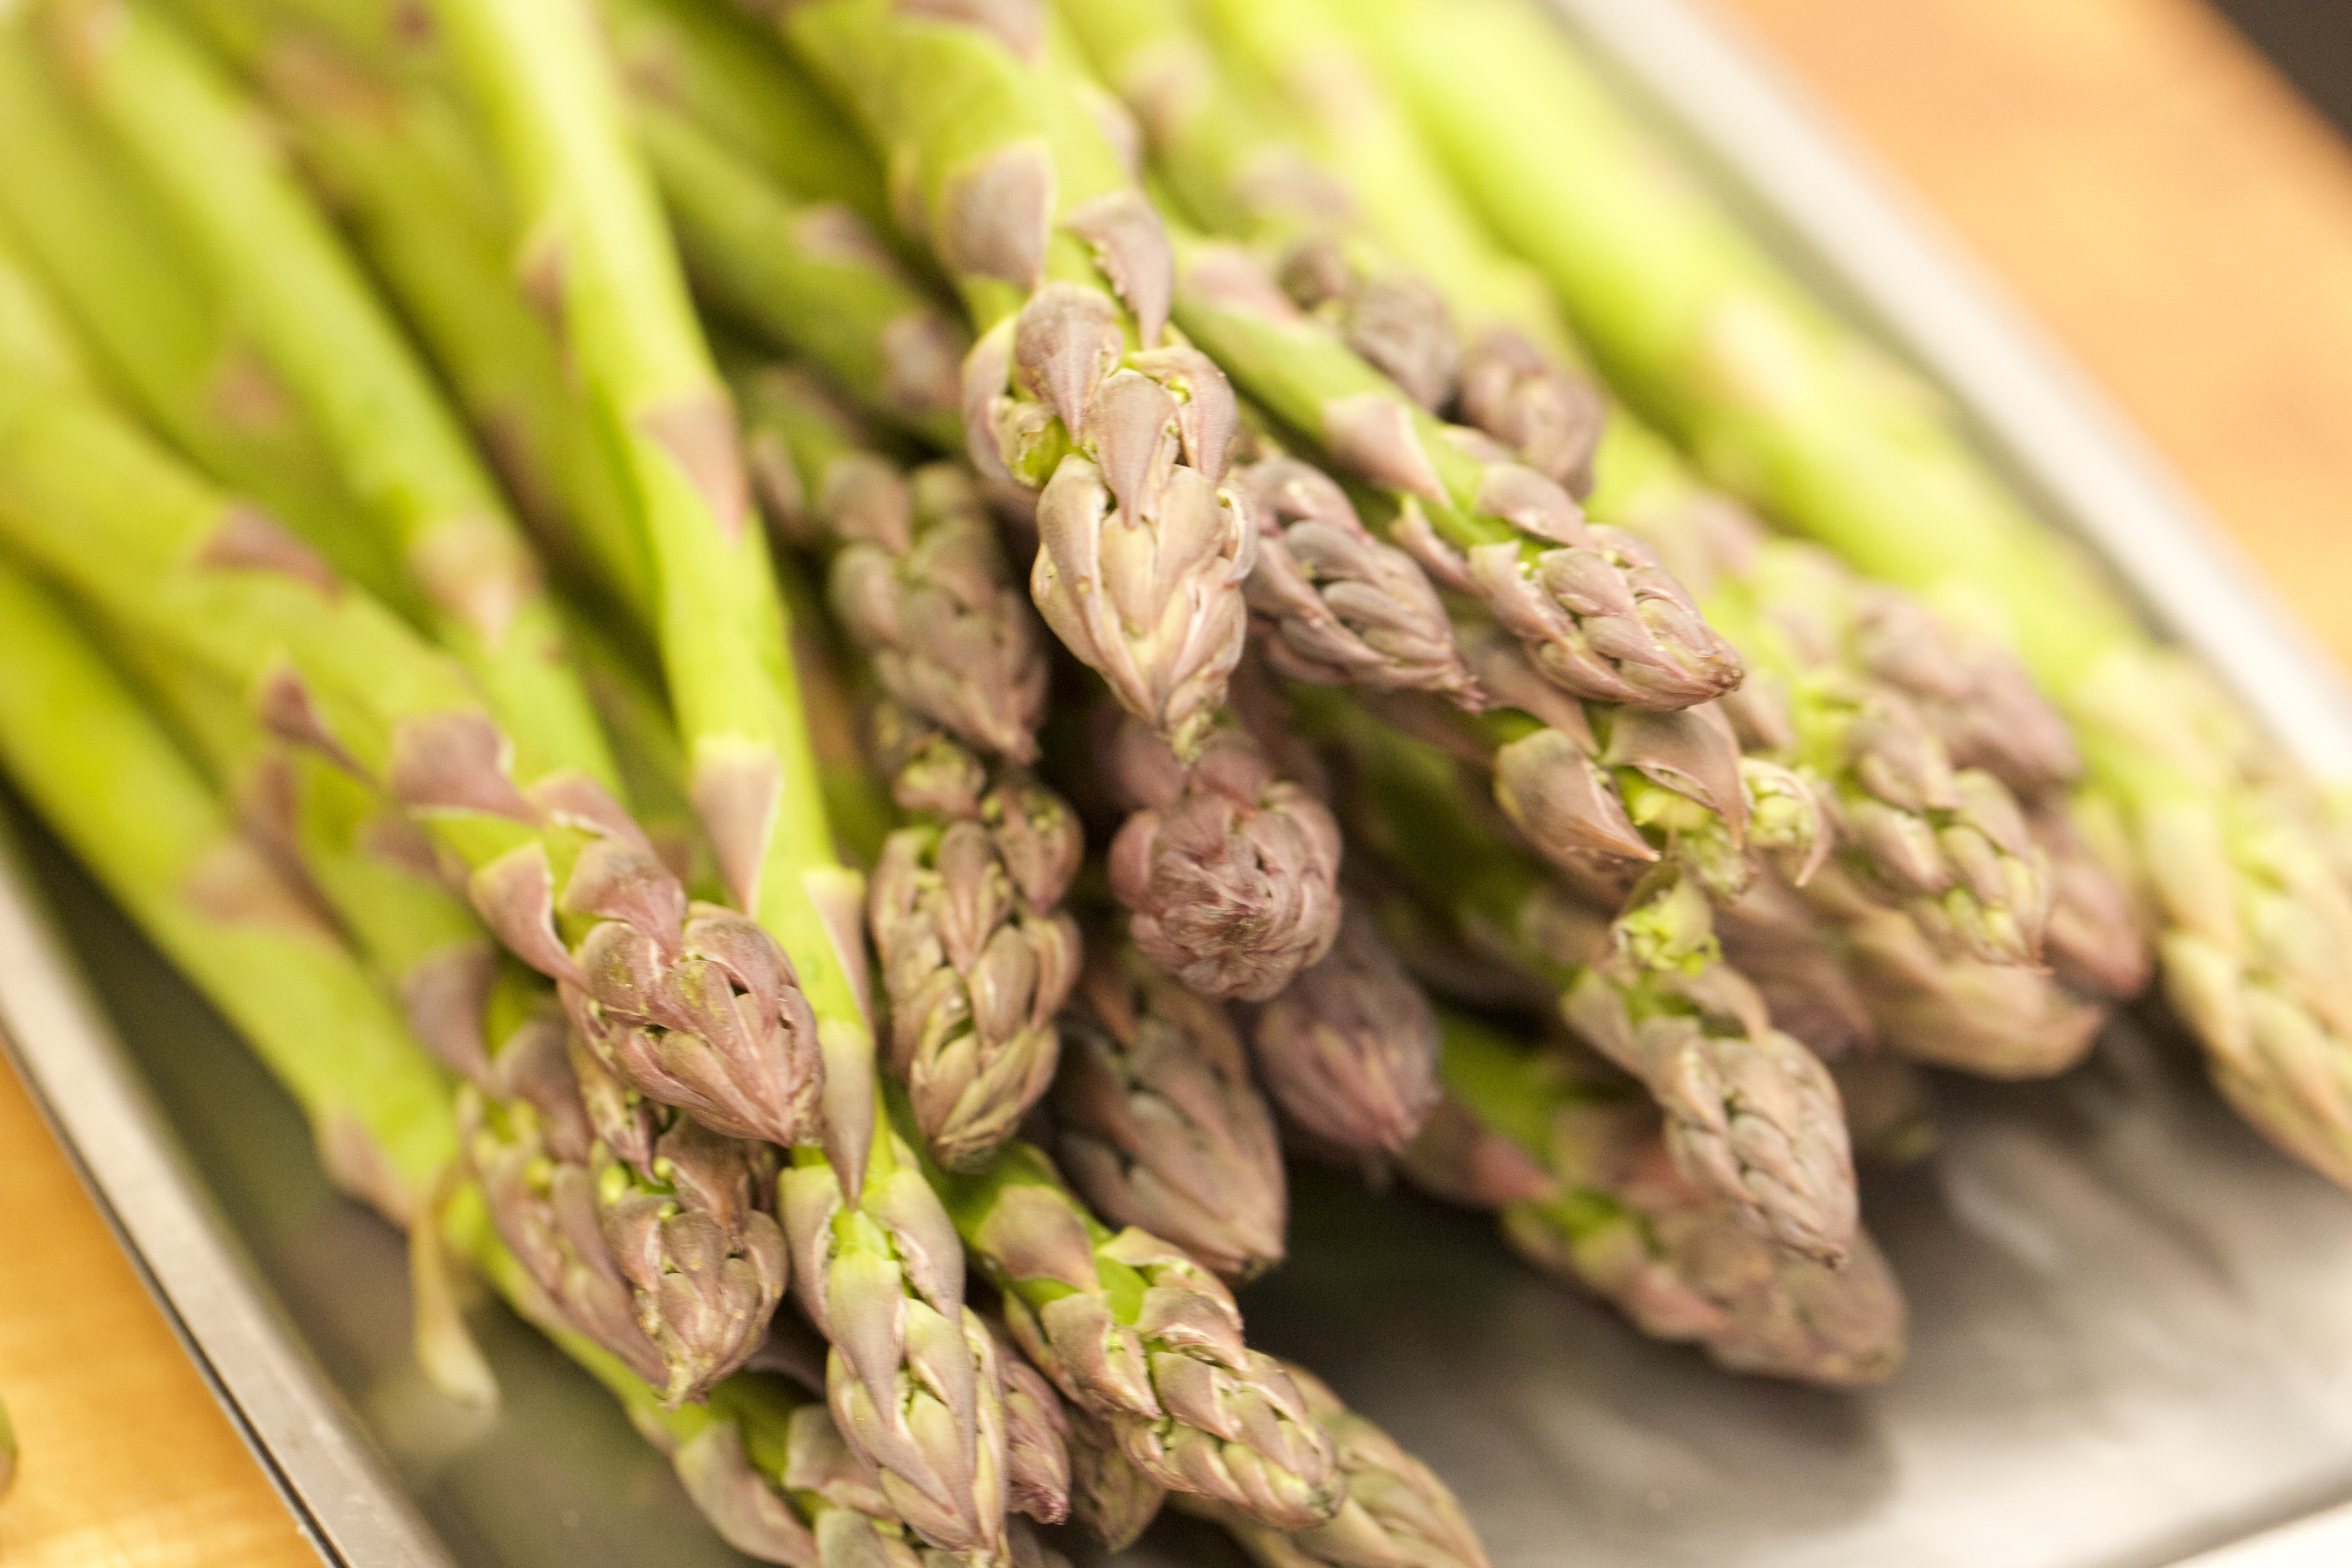 Today, The Greenmarket Has Inspired Hedendal To Roast The Asparagus In A  Hot Oven Till Just The Far Side Of Tender